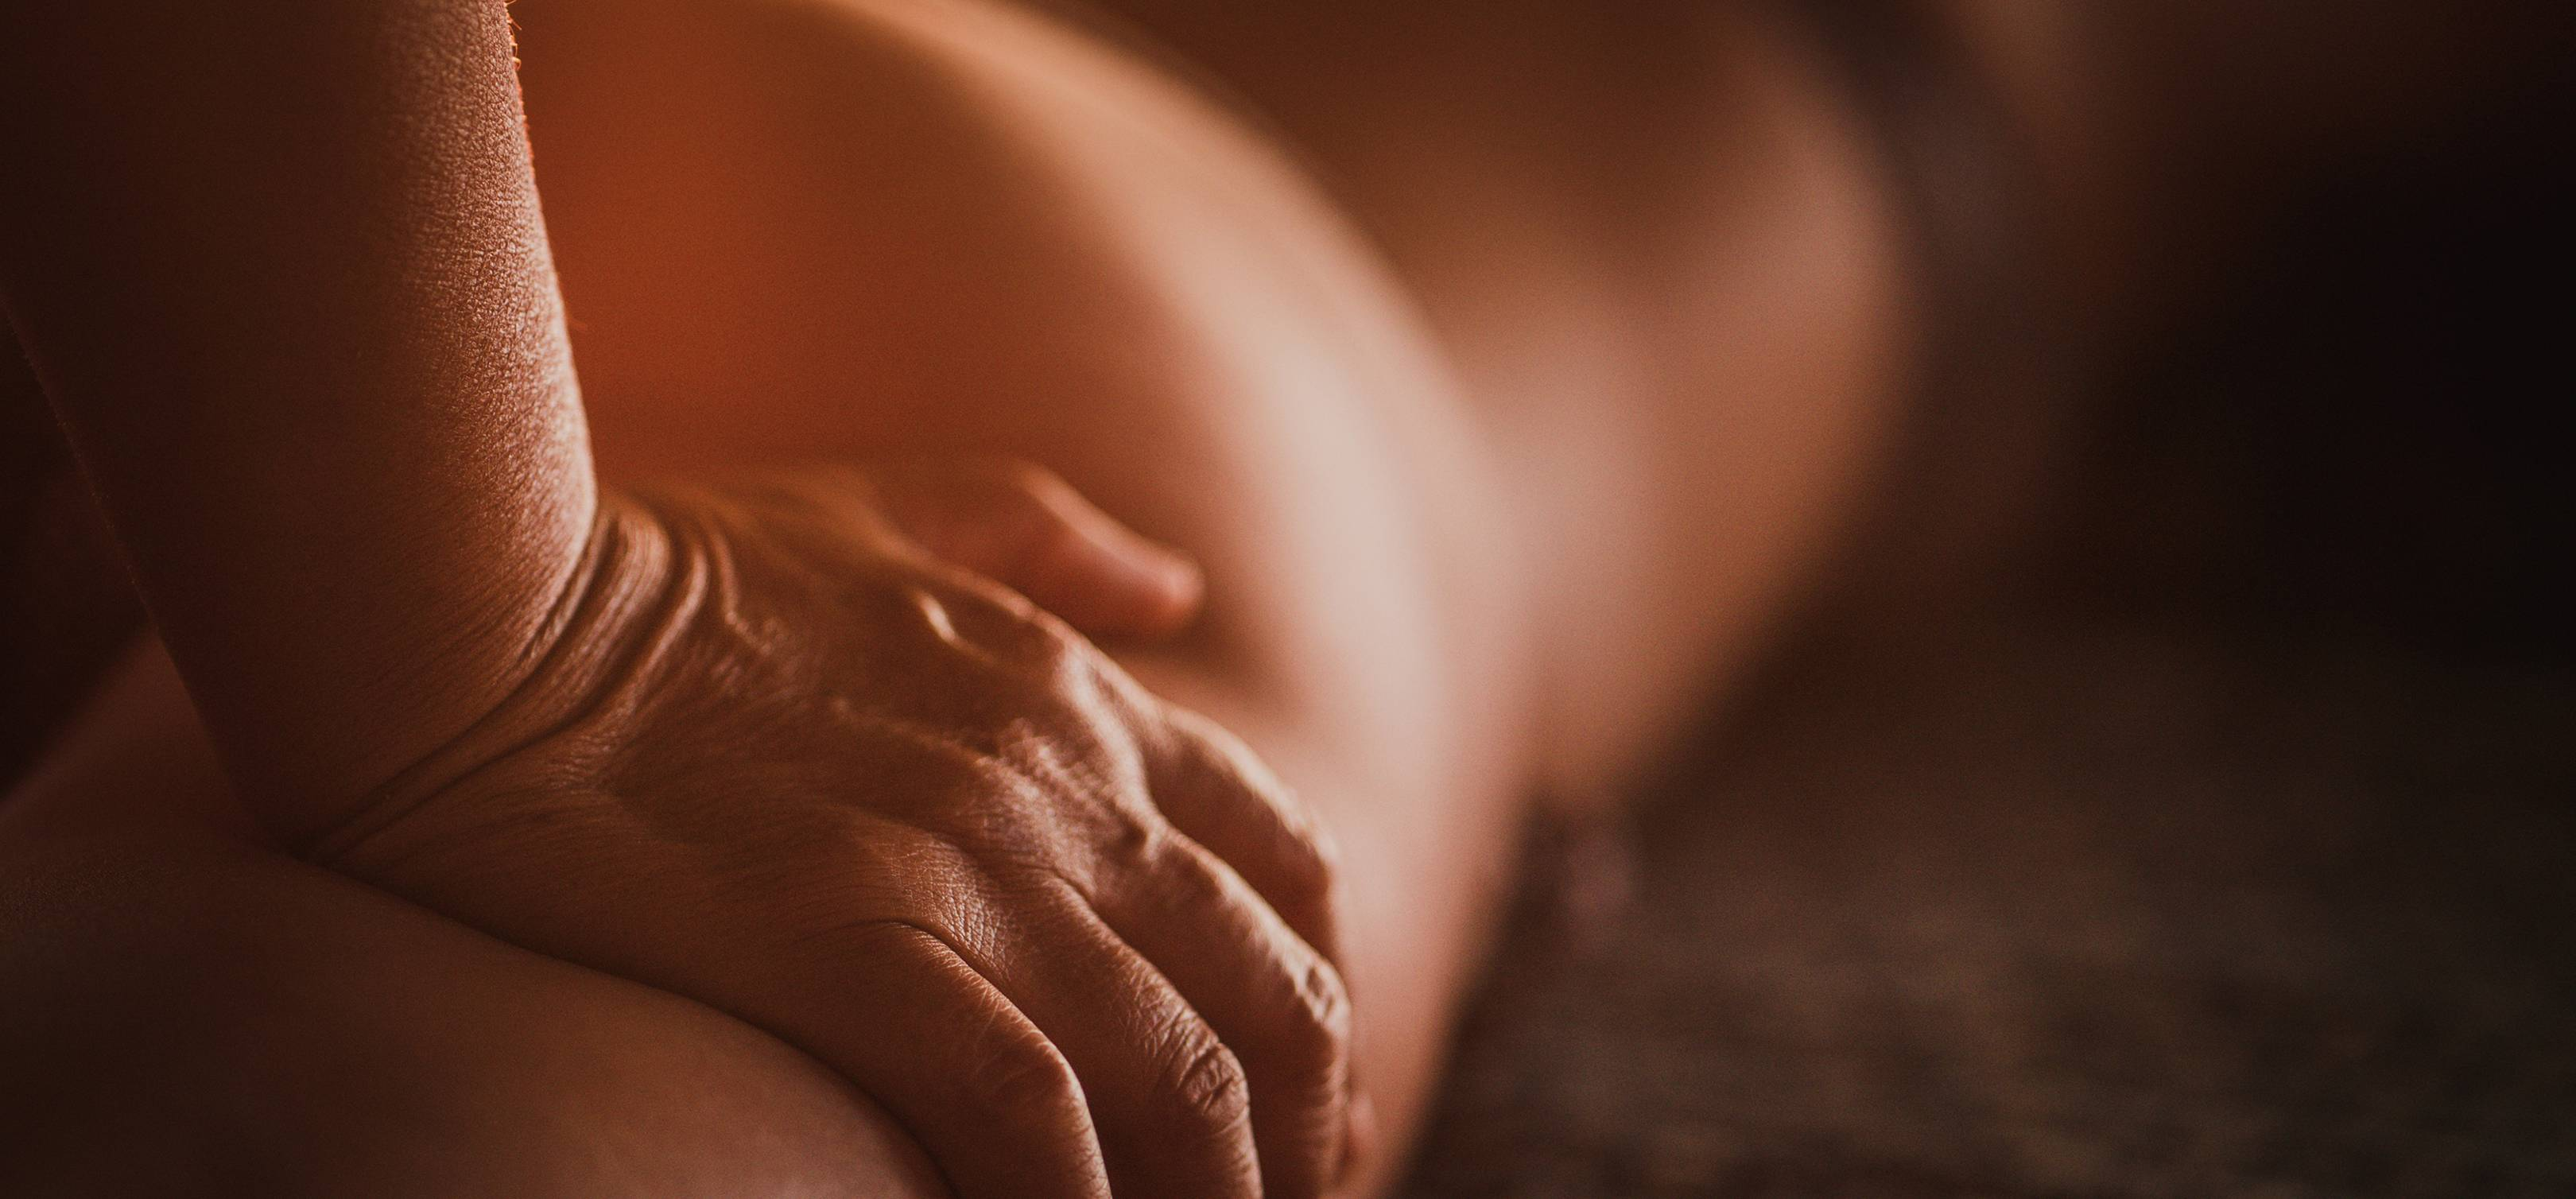 What Is A Yoni Massage And What Are The Benefits? | Glamour UK